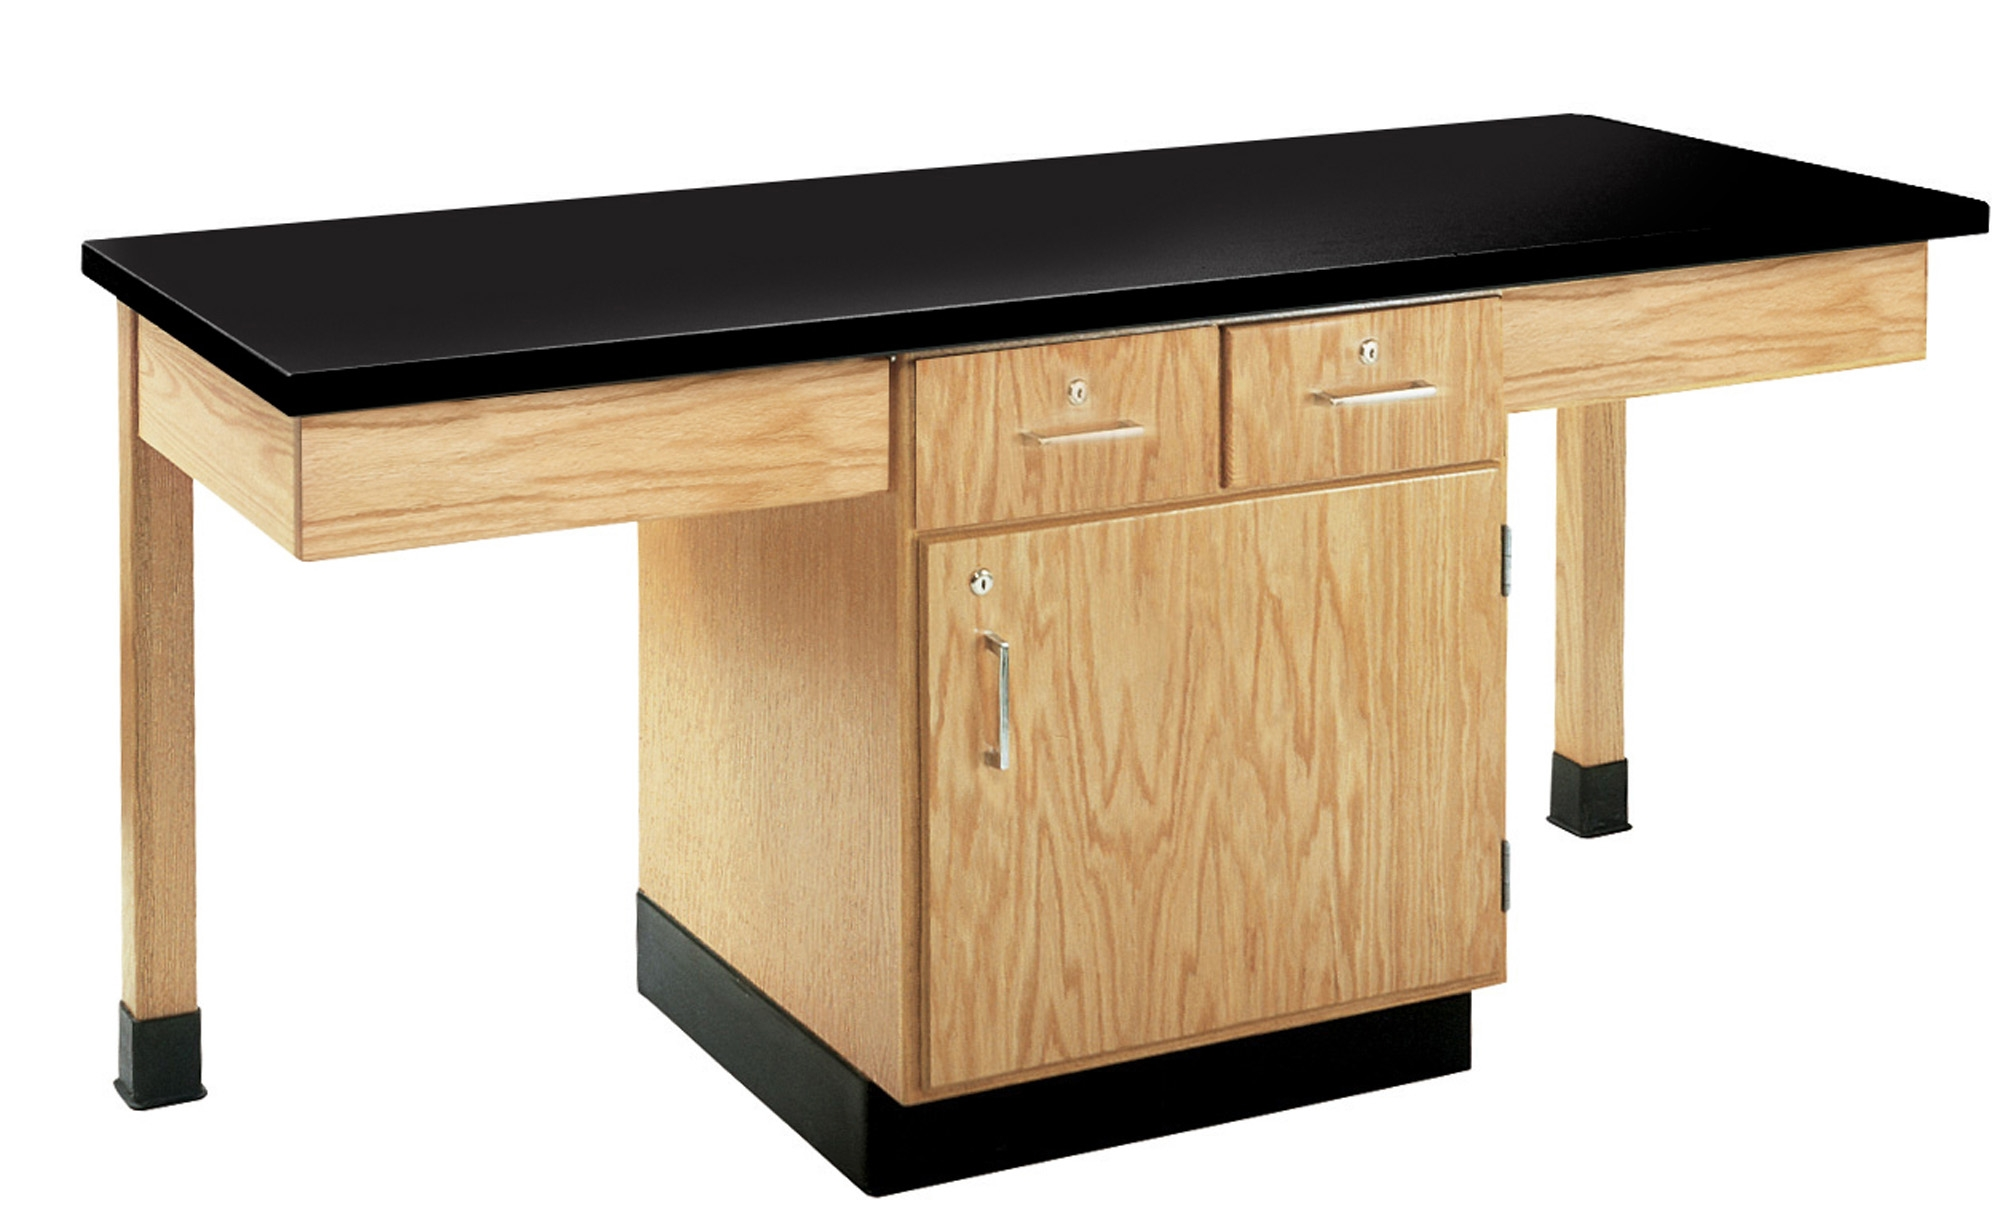 Diversified Woodcrafts 4 Station Table - Plastic Laminate Top